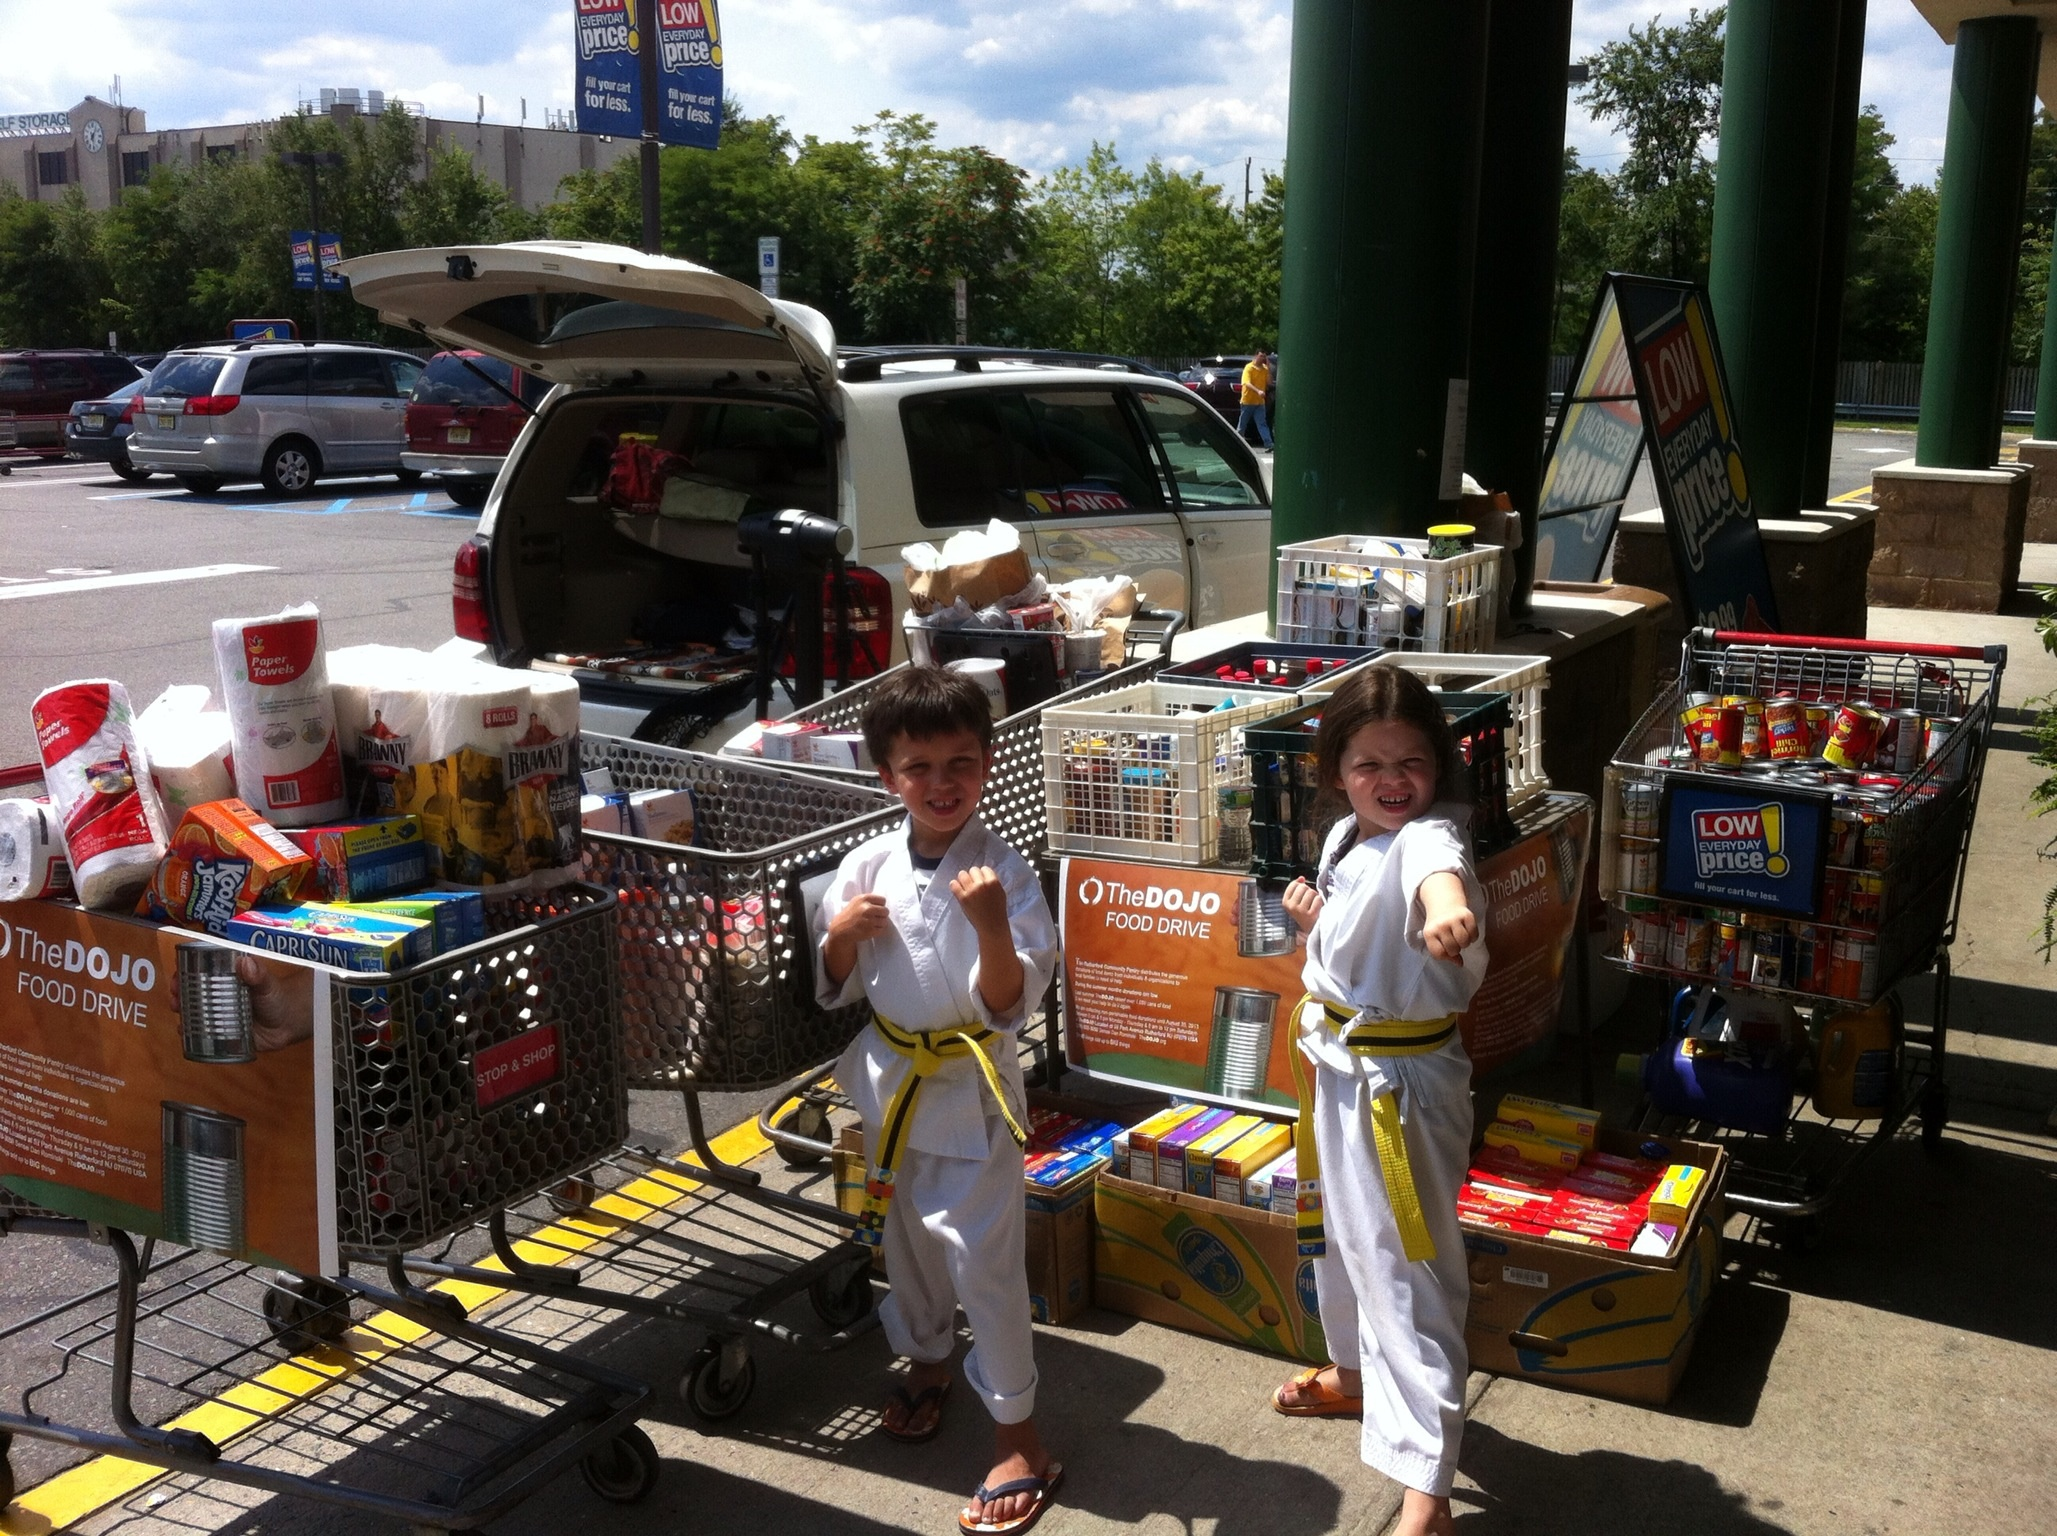 5 Year Old Twins Raise over 1,000 Items for Food Pantry